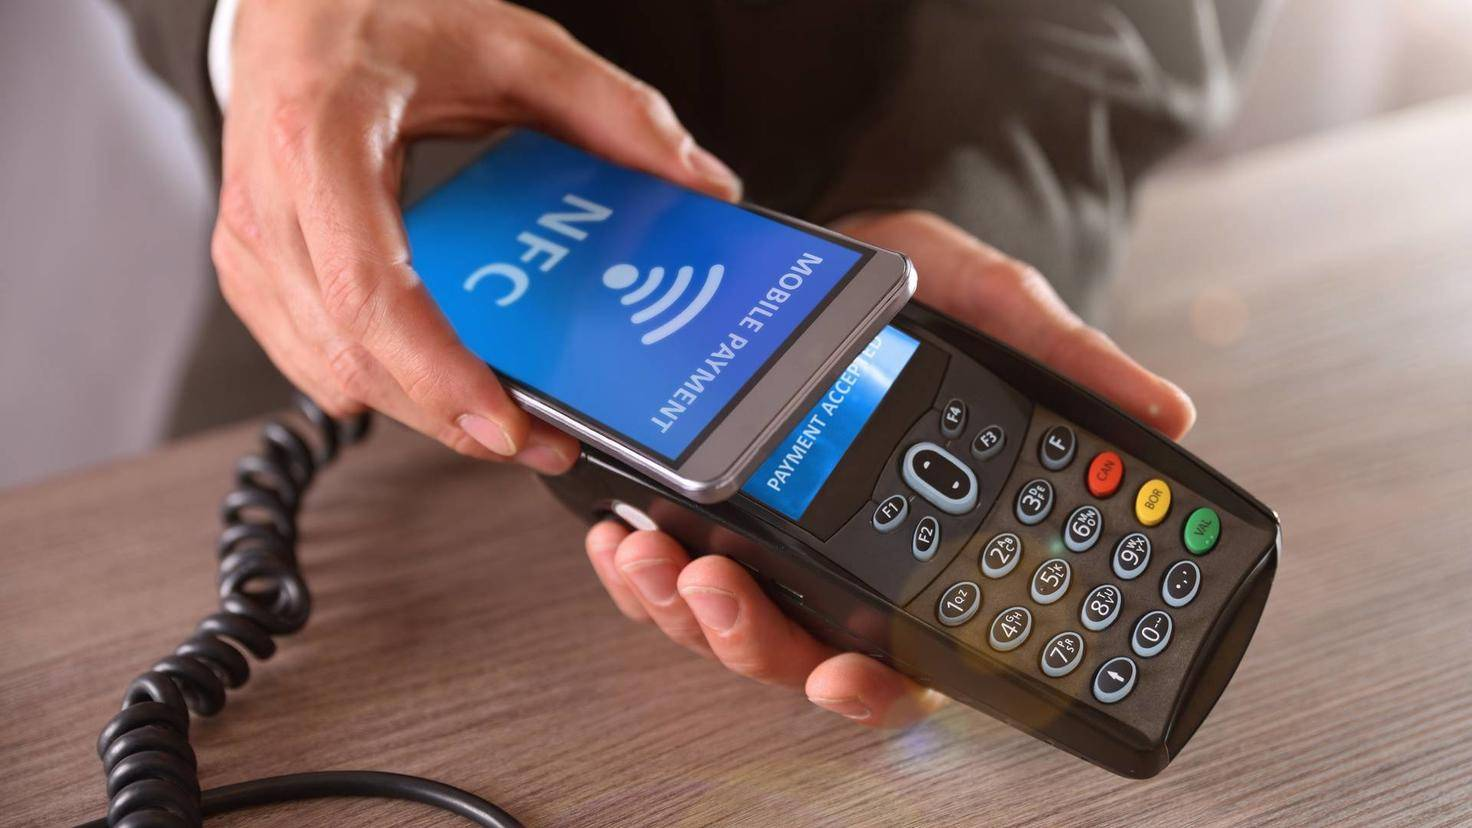 Businessman paying through mobile NFC technology